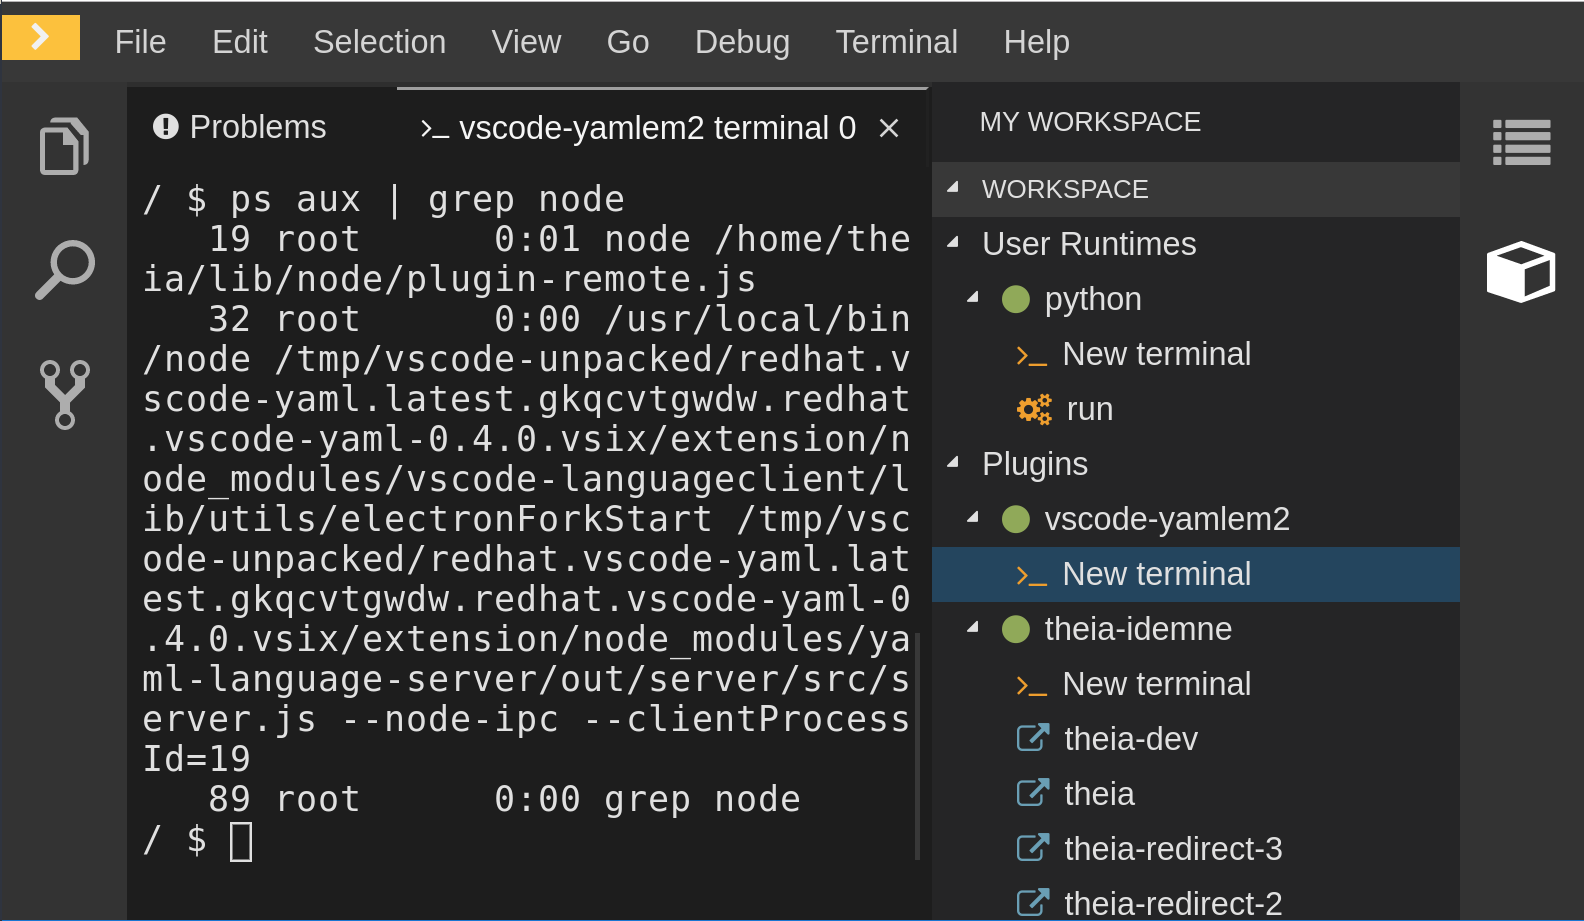 verifying the state of the yaml language server